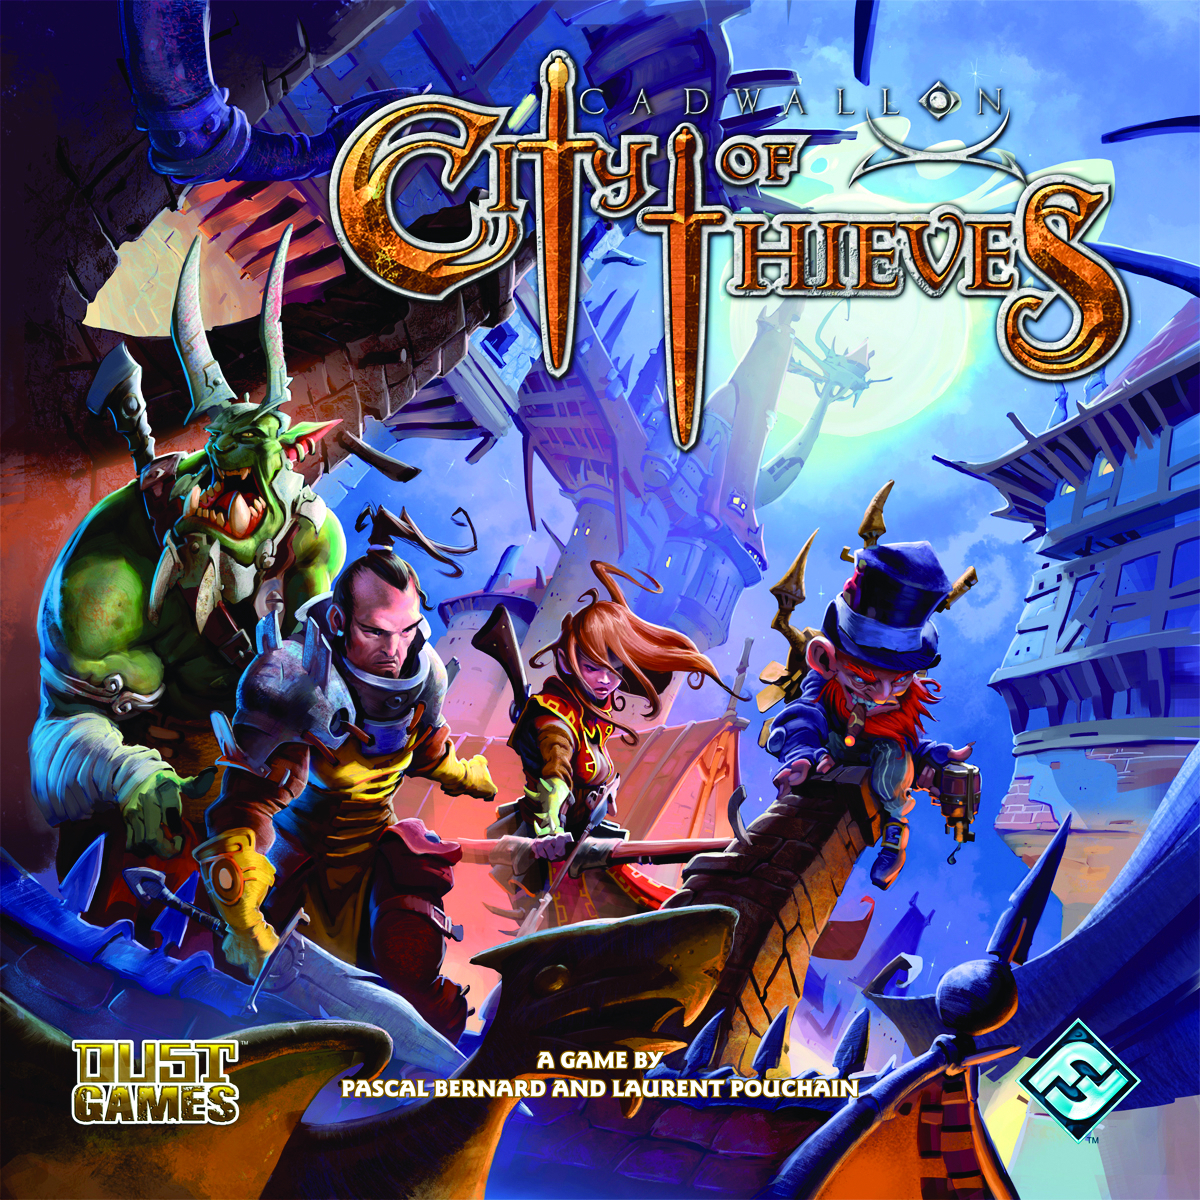 CADWALLON CITY OF THIEVES BOARD GAME